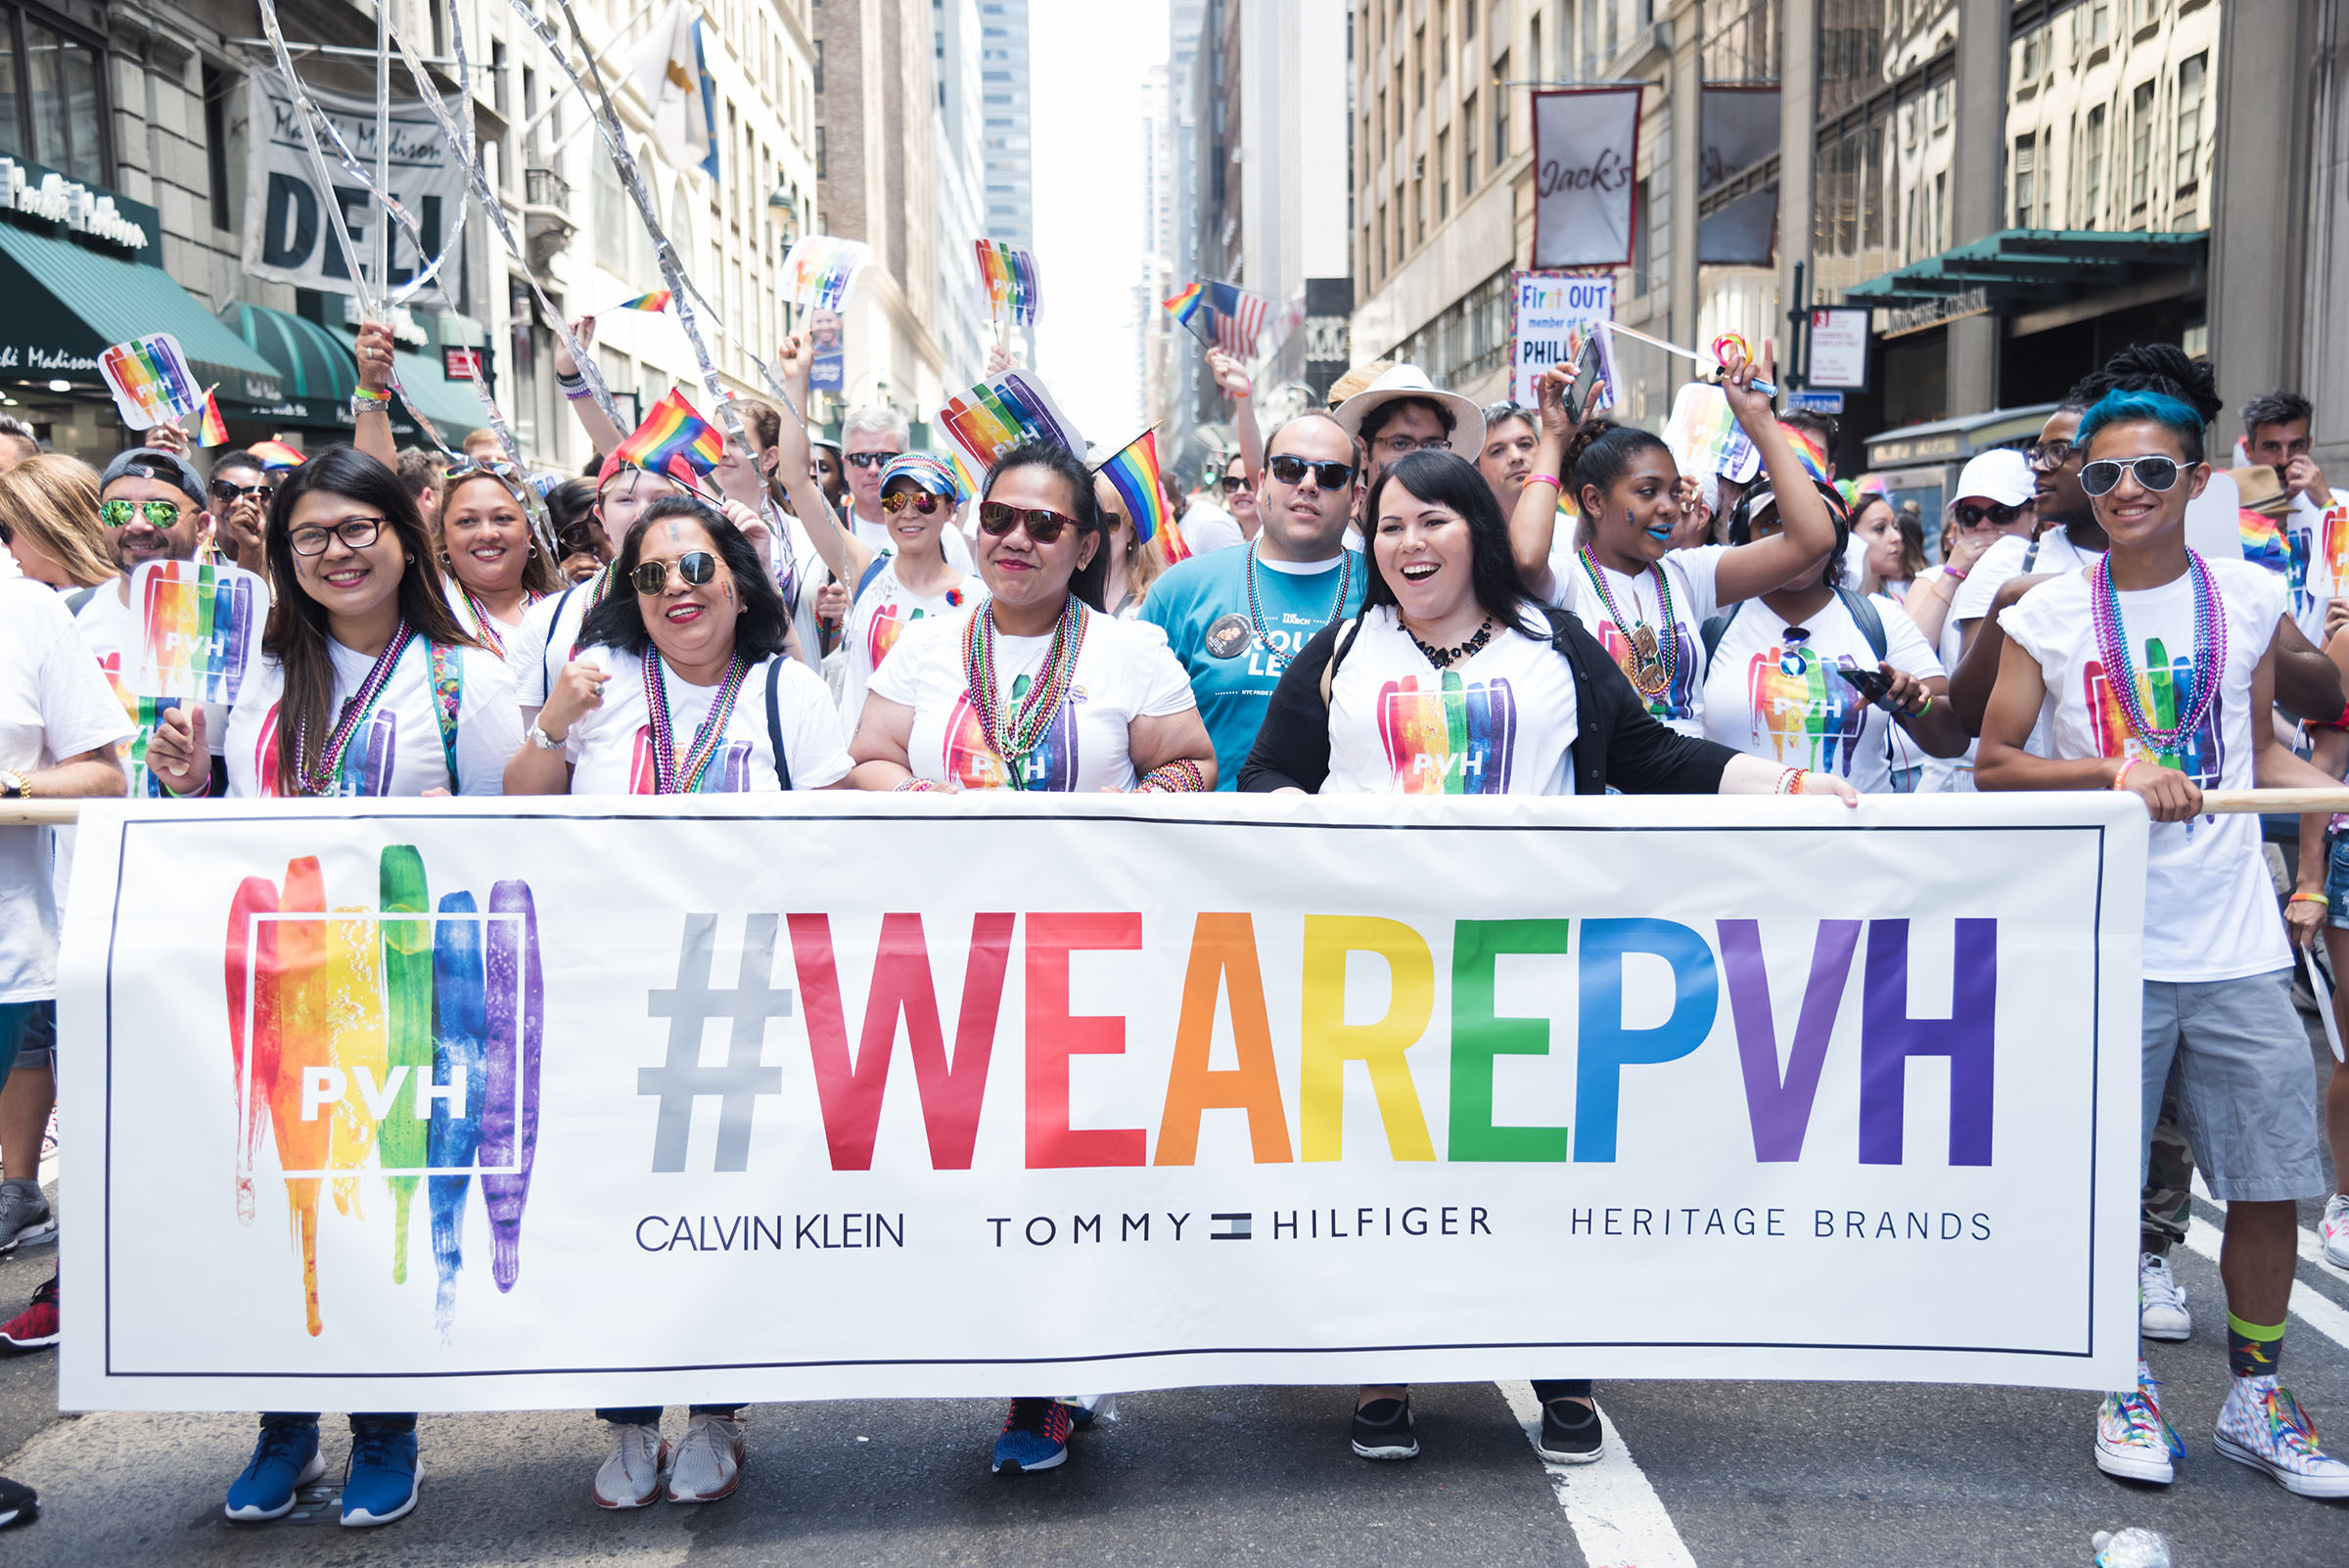 PVH at the NYC Pride March 2017 (Photo Business Wire)